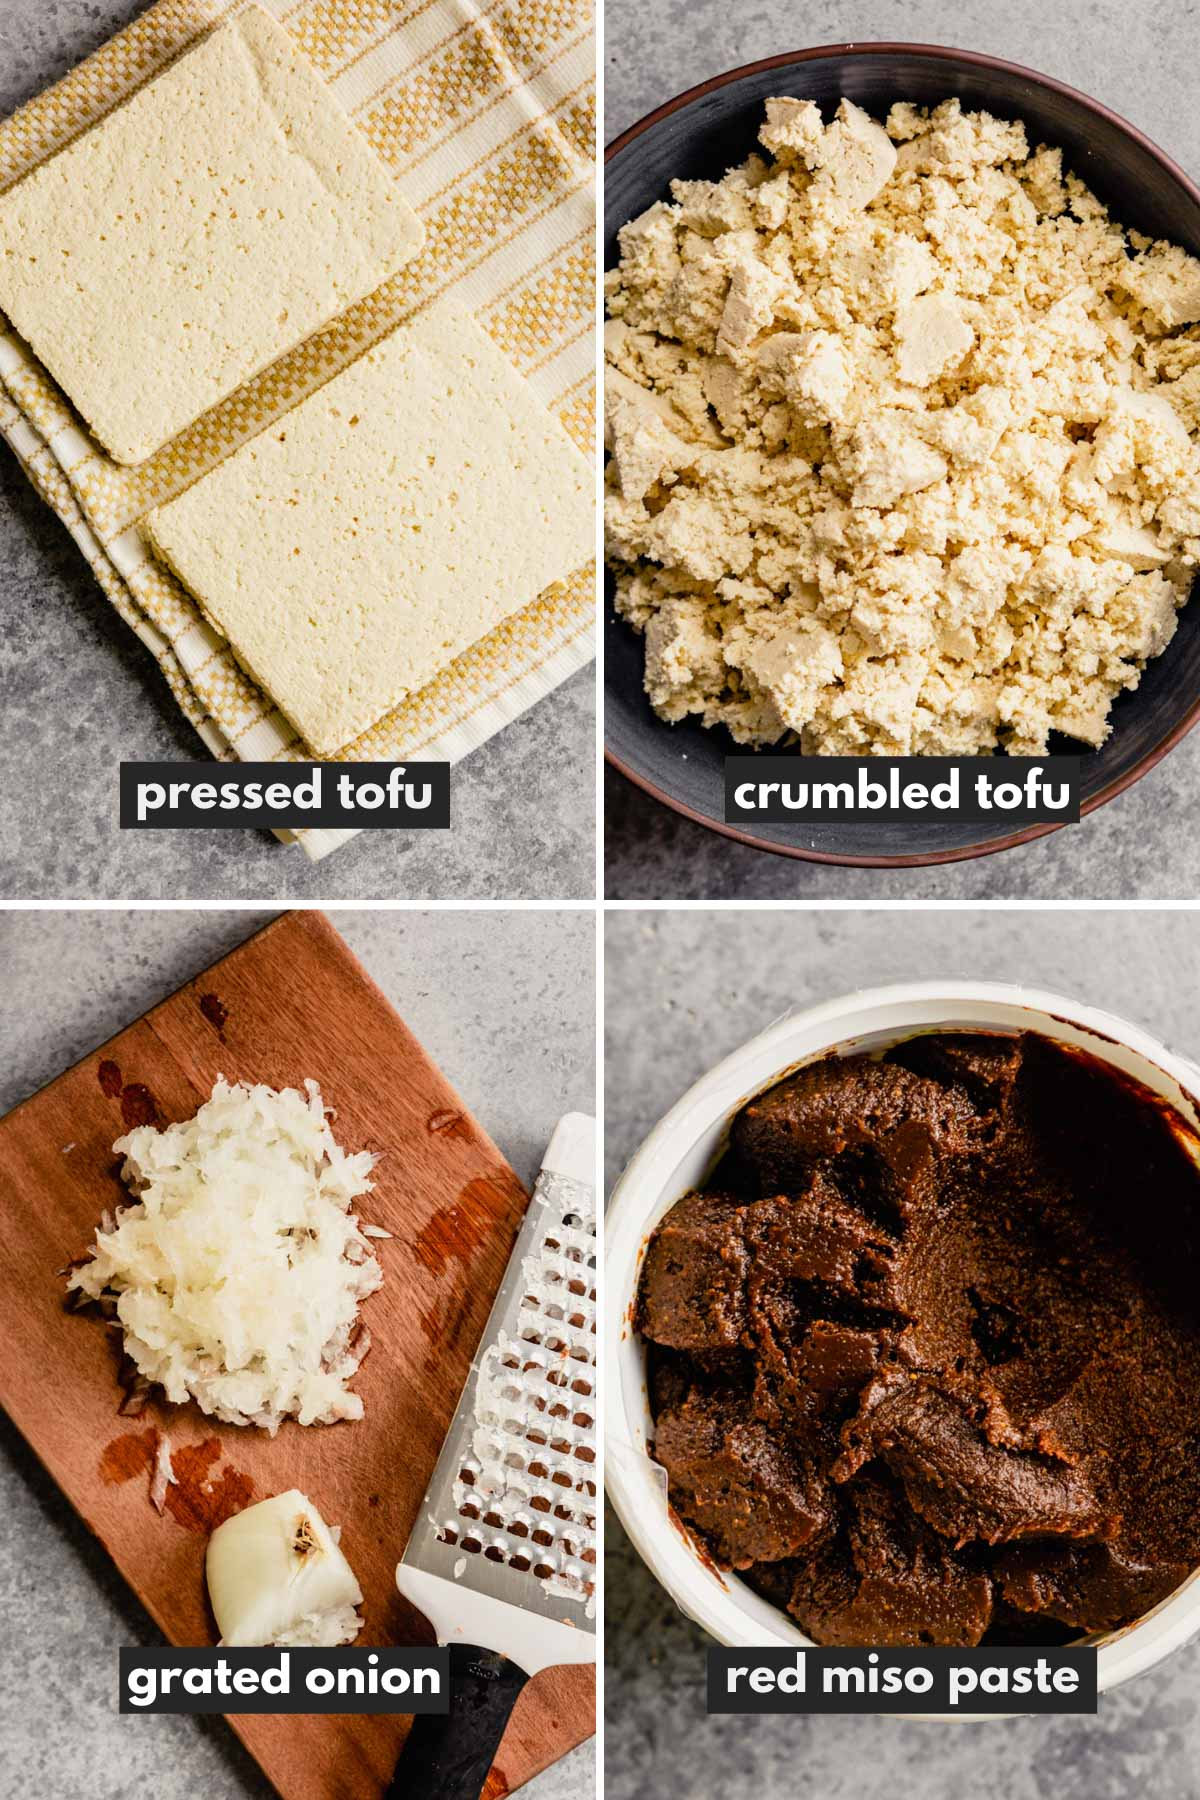 four images showing how to press tofu, crumble tofu, shredded onion and what red miso looks like